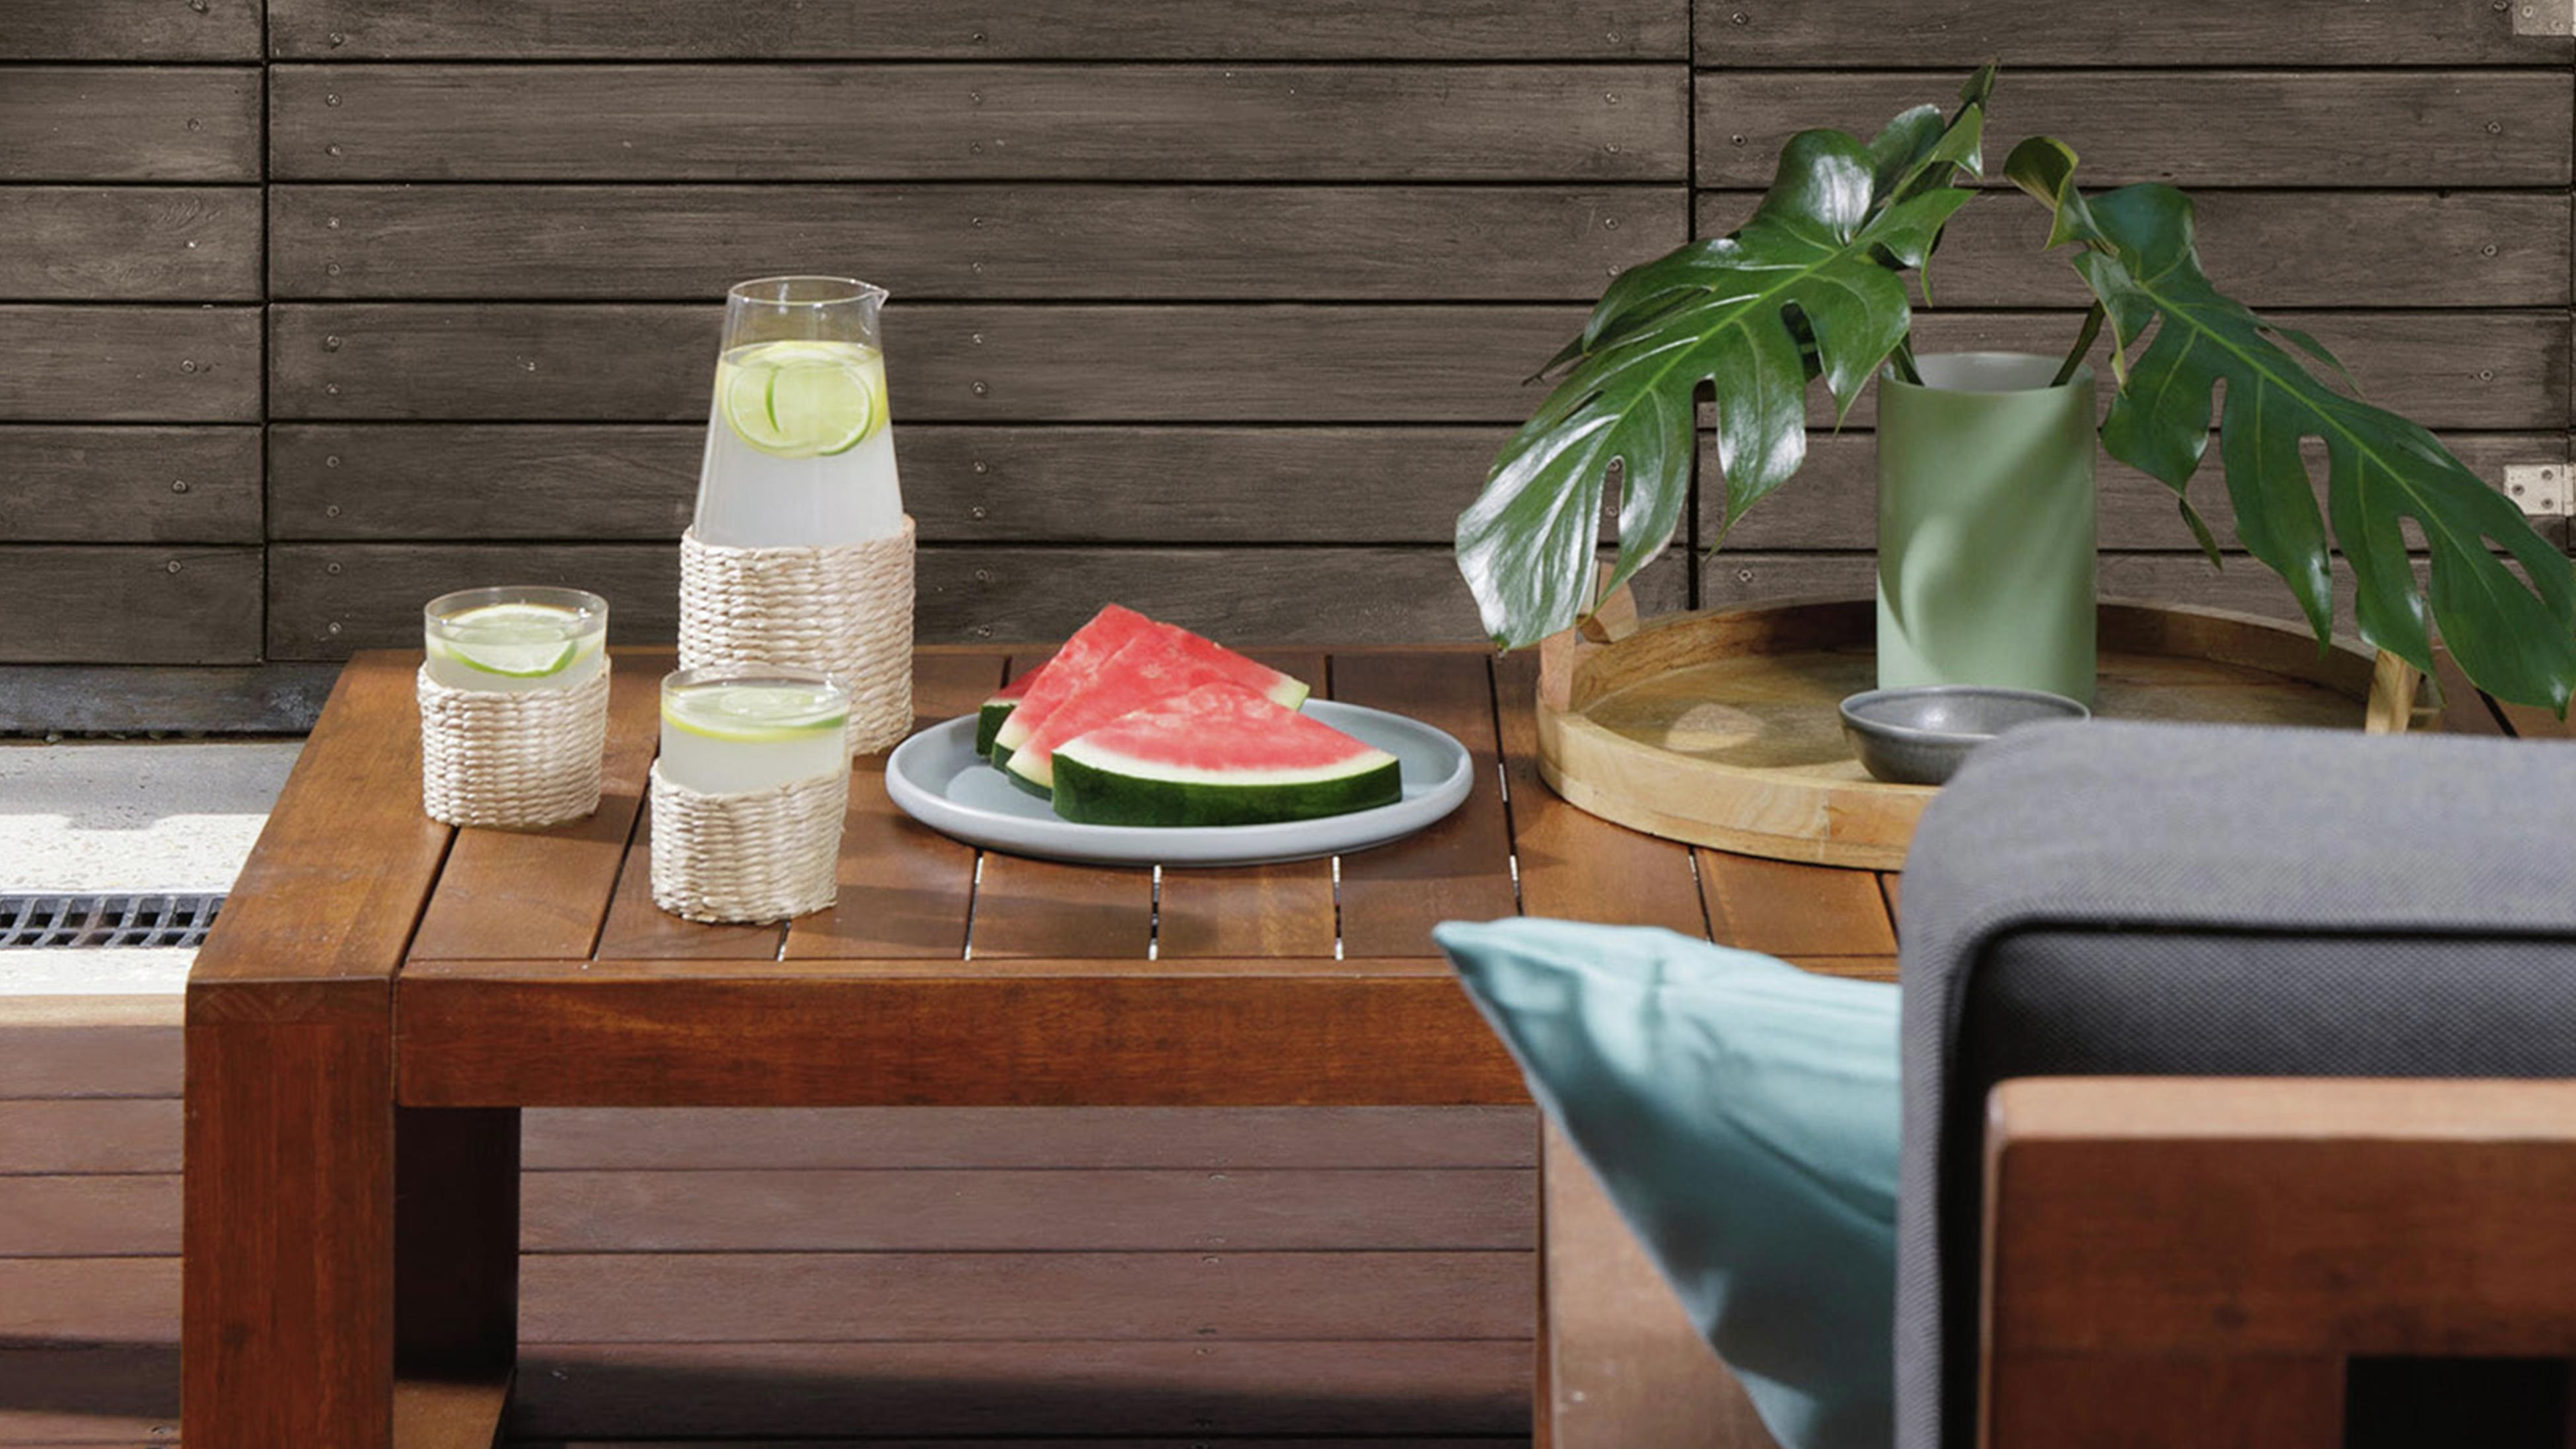 Dining table in outdoor dining area with watermelon and lemonade